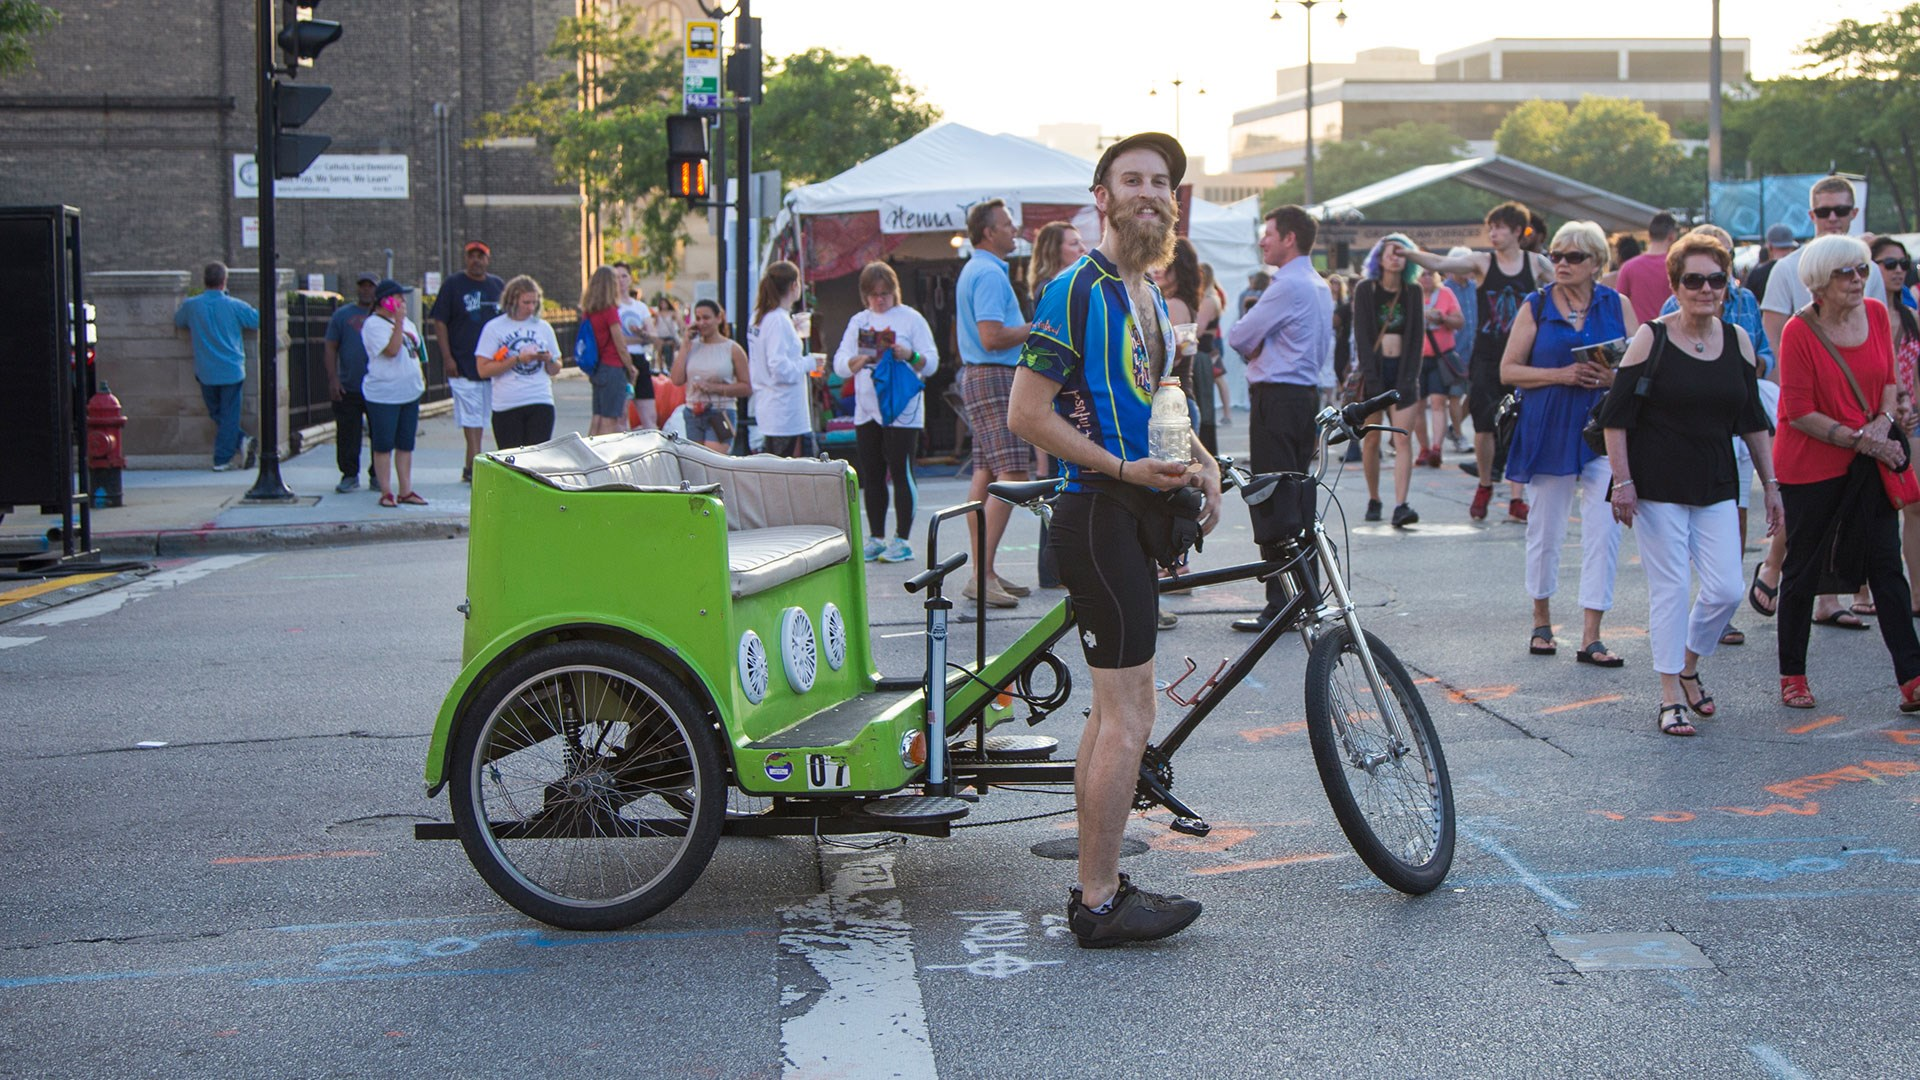 Forward Pedicabs